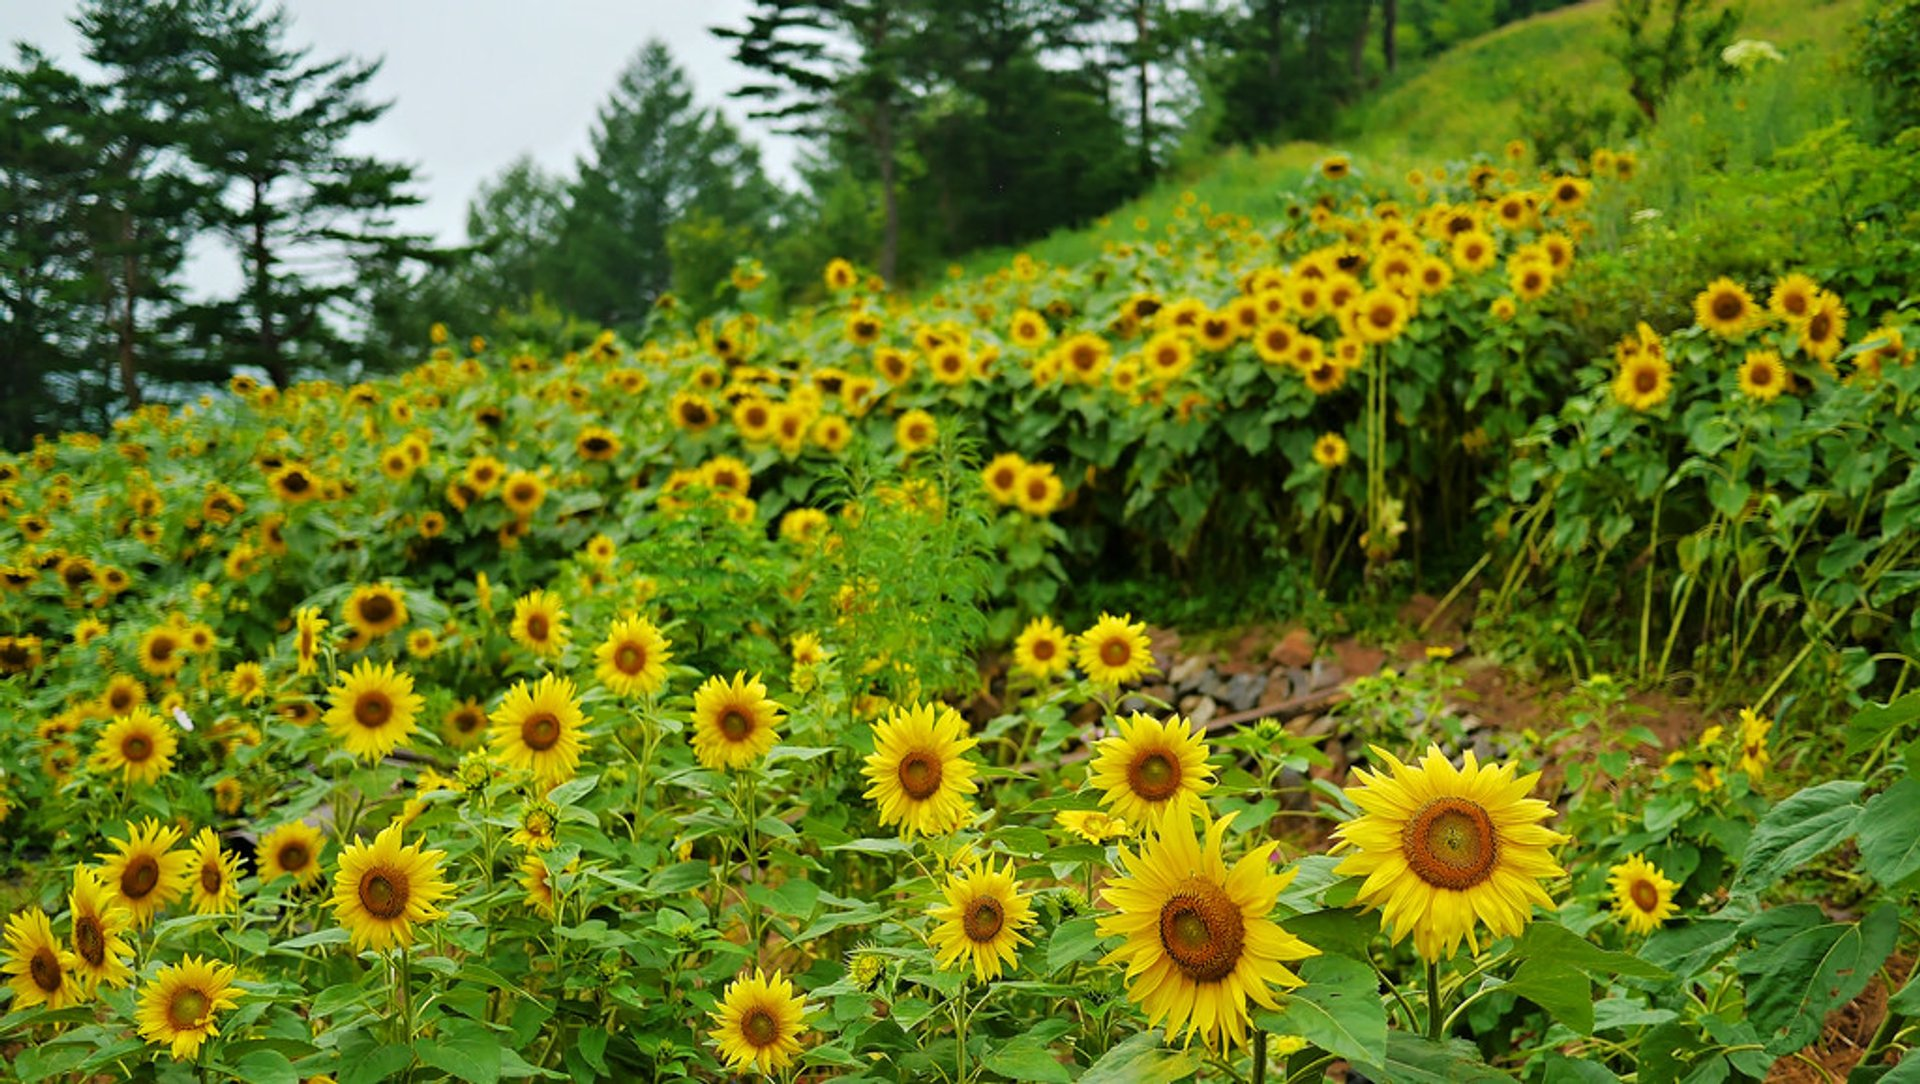 Best time to see Sunflowers in South Korea